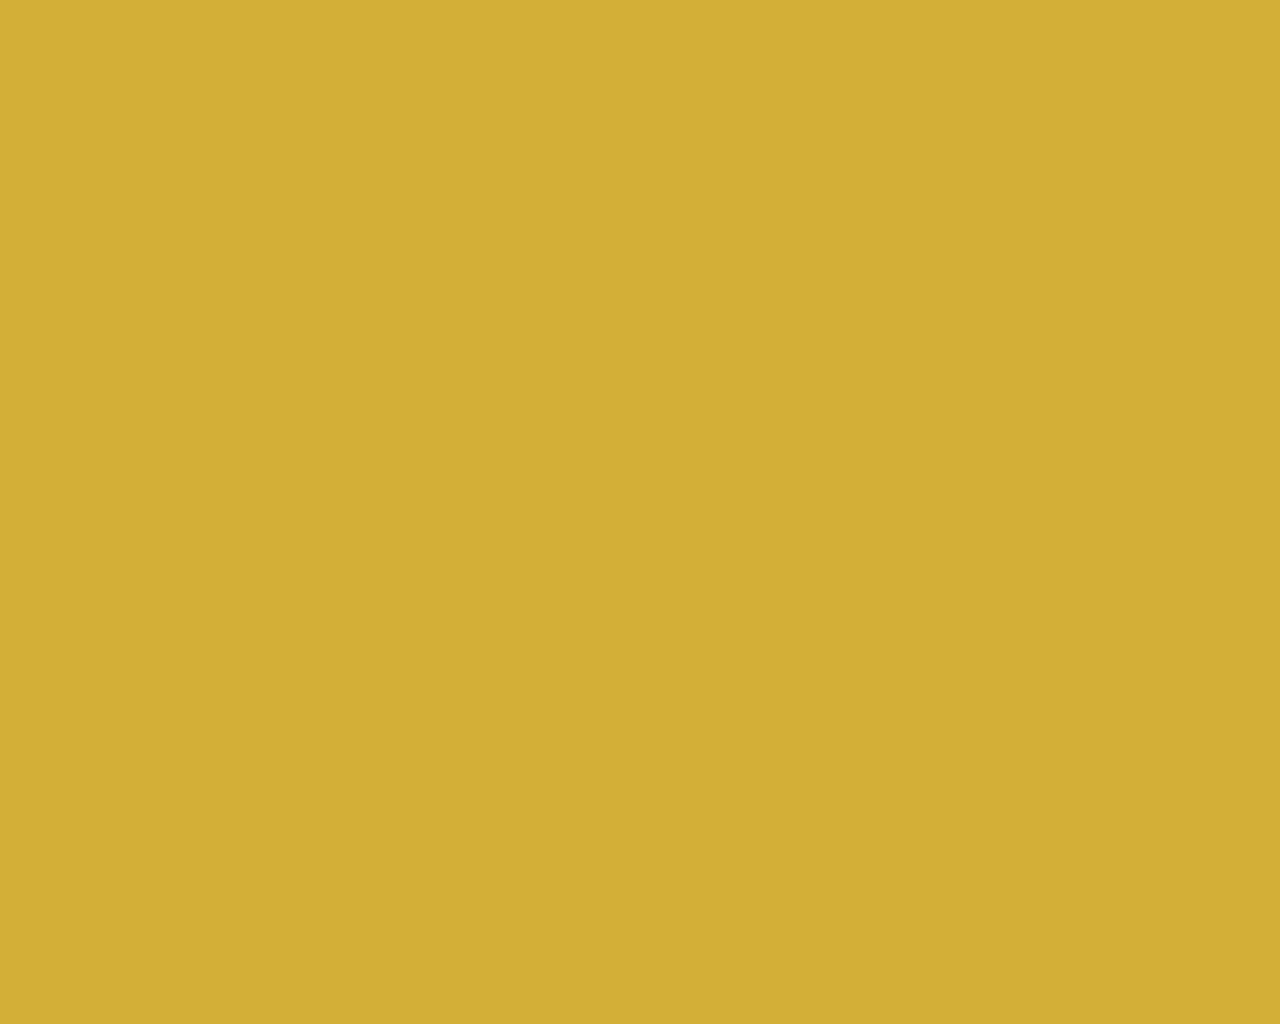 1280x1024 Gold Metallic Solid Color Background